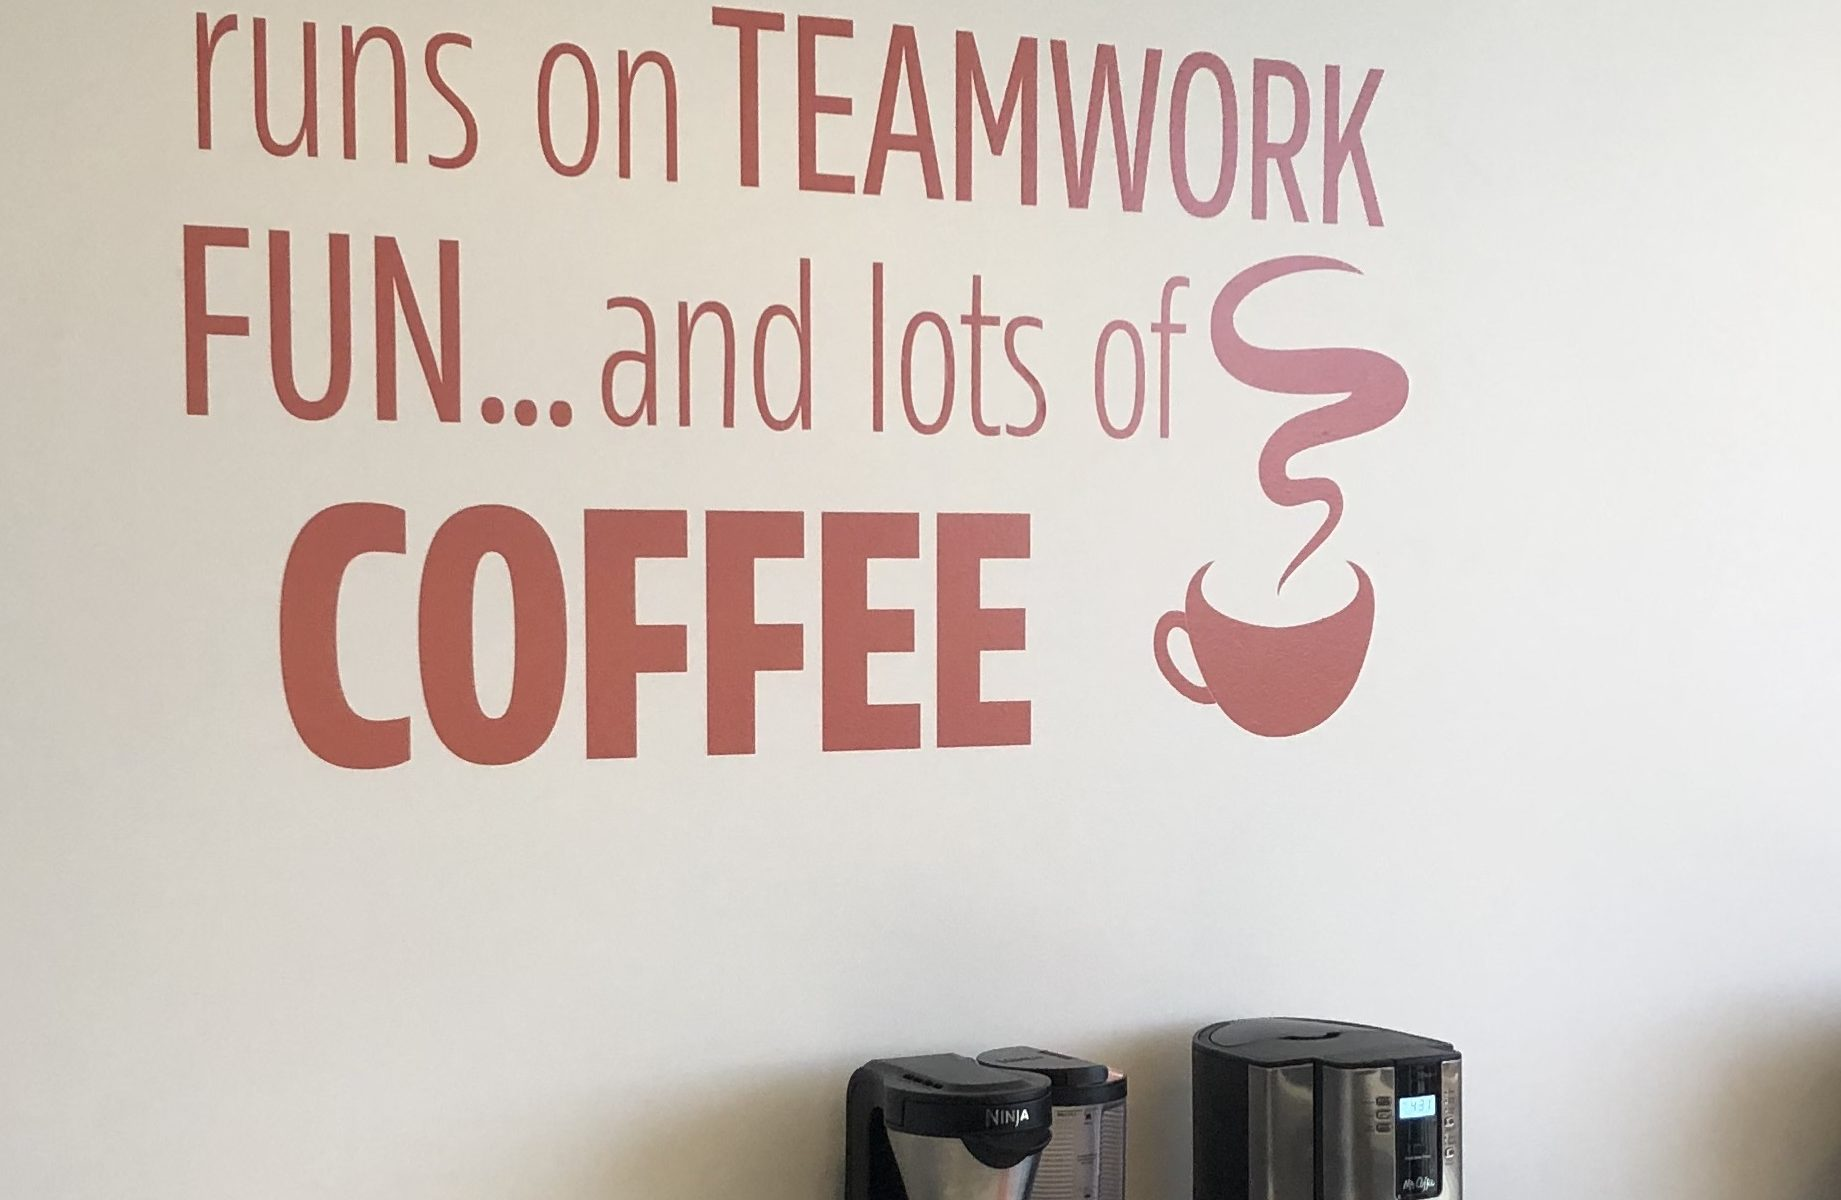 Throughout the Jones and Jones' Woodland Hills office, we fabricated and installed wall art lobby signs displaying what the brand offers to impress clients.